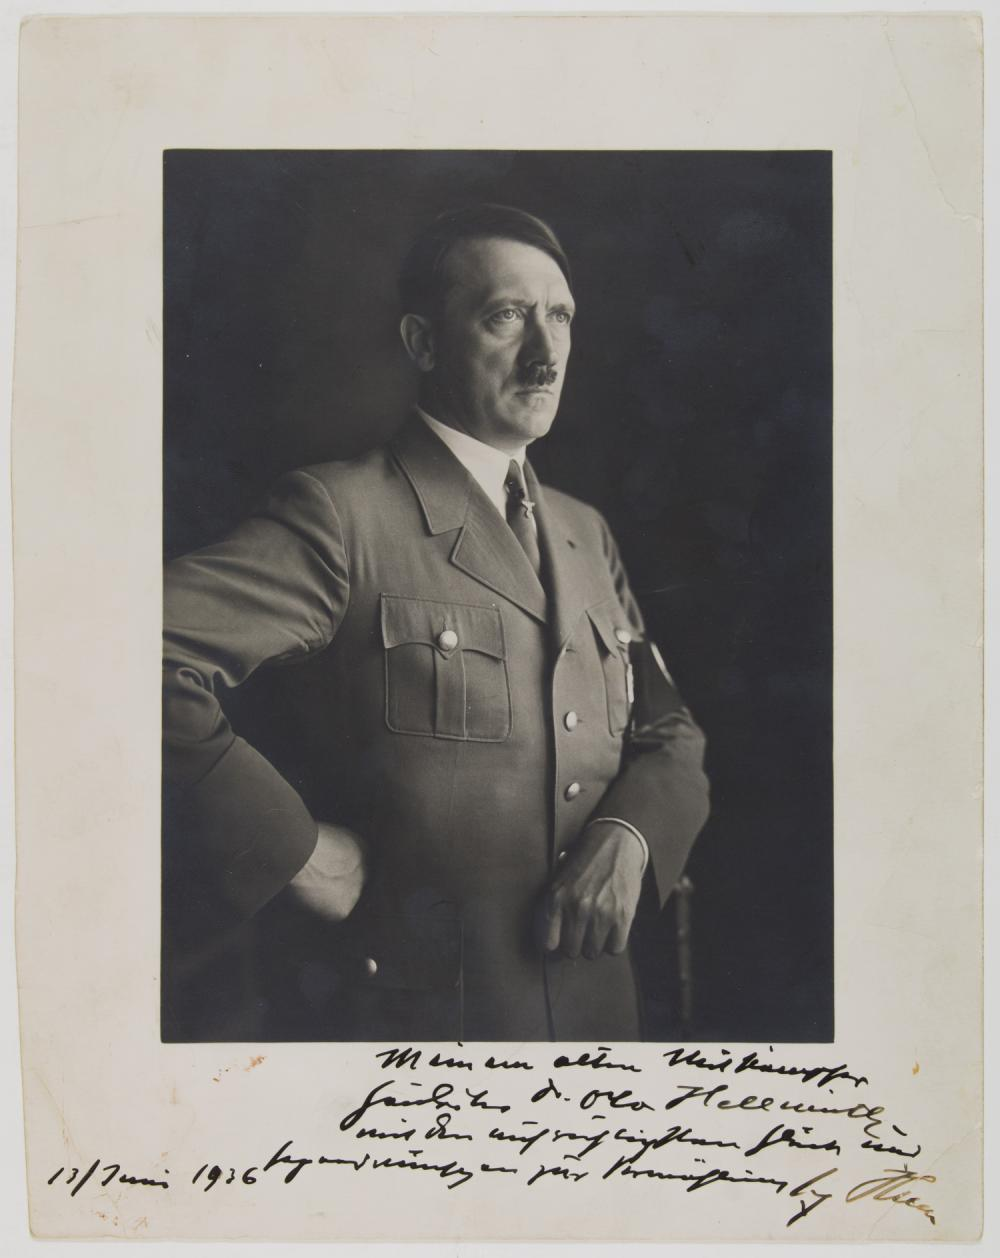 ADOLF HITLER GIFTS HIS SIGNED PORTRAIT TO GAULEITER OTTO HELLMUTH